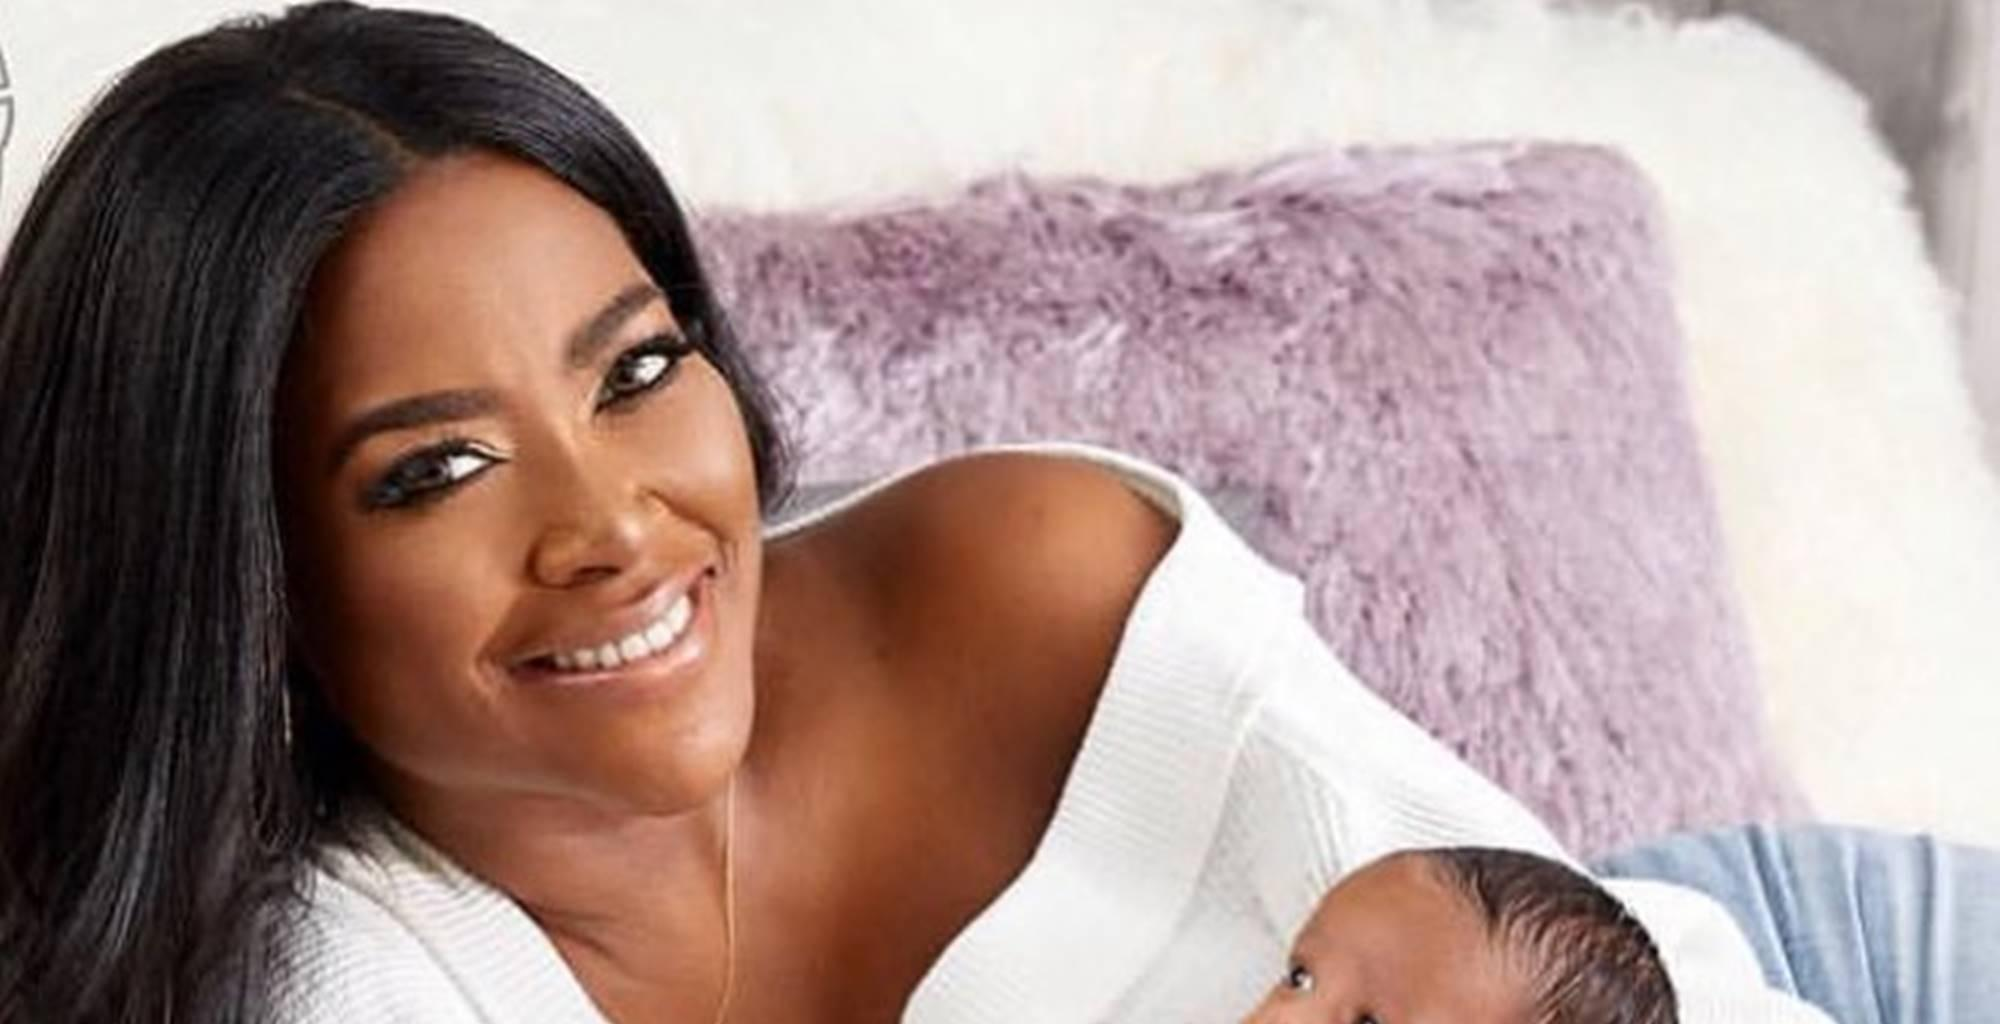 Kenya Moore Posts Photo Of Brooklyn And Jewelry With Meaningful Message And Thanks 'RHOA' Fans For Gifts